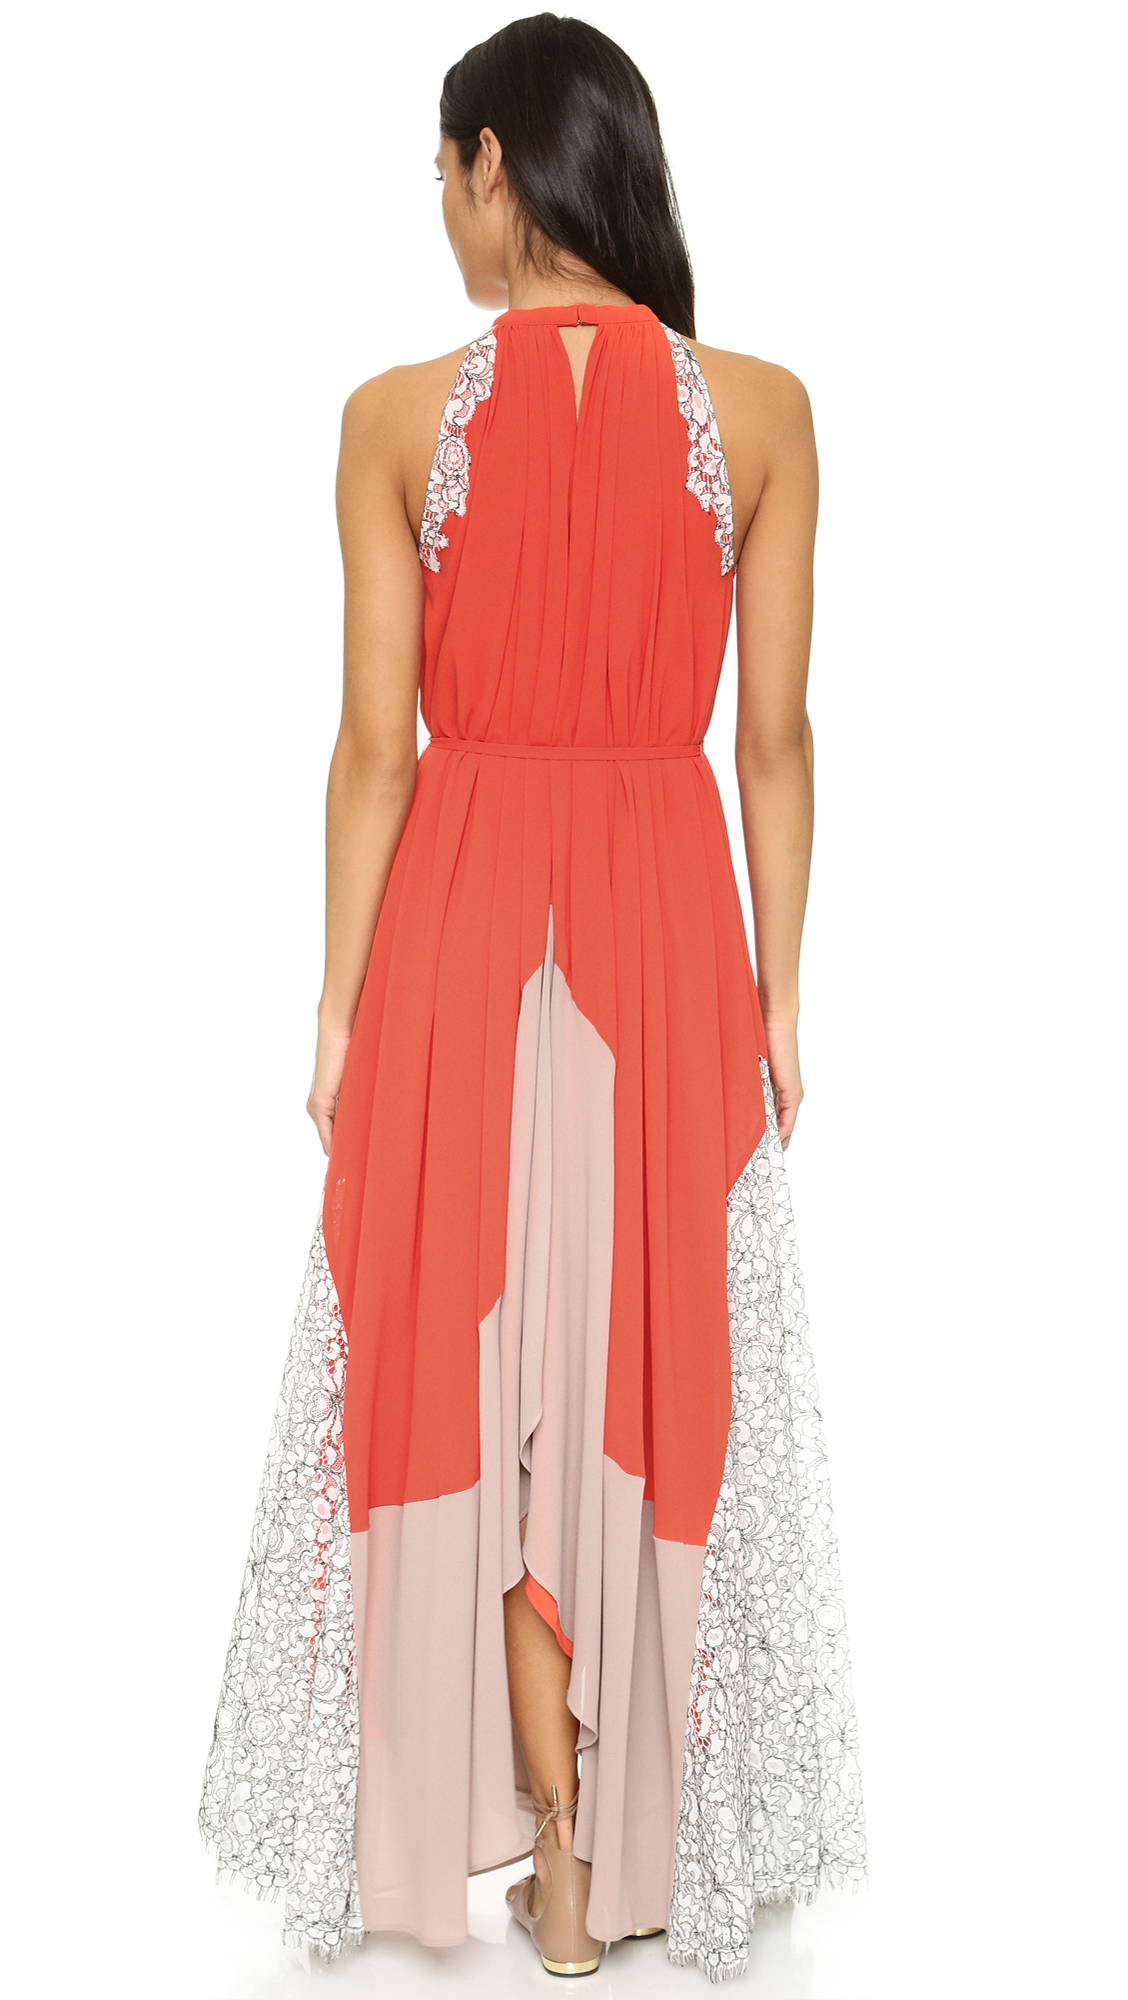 c8aa8c0747a Saloni Iris Lace Dress in Pink - Lyst